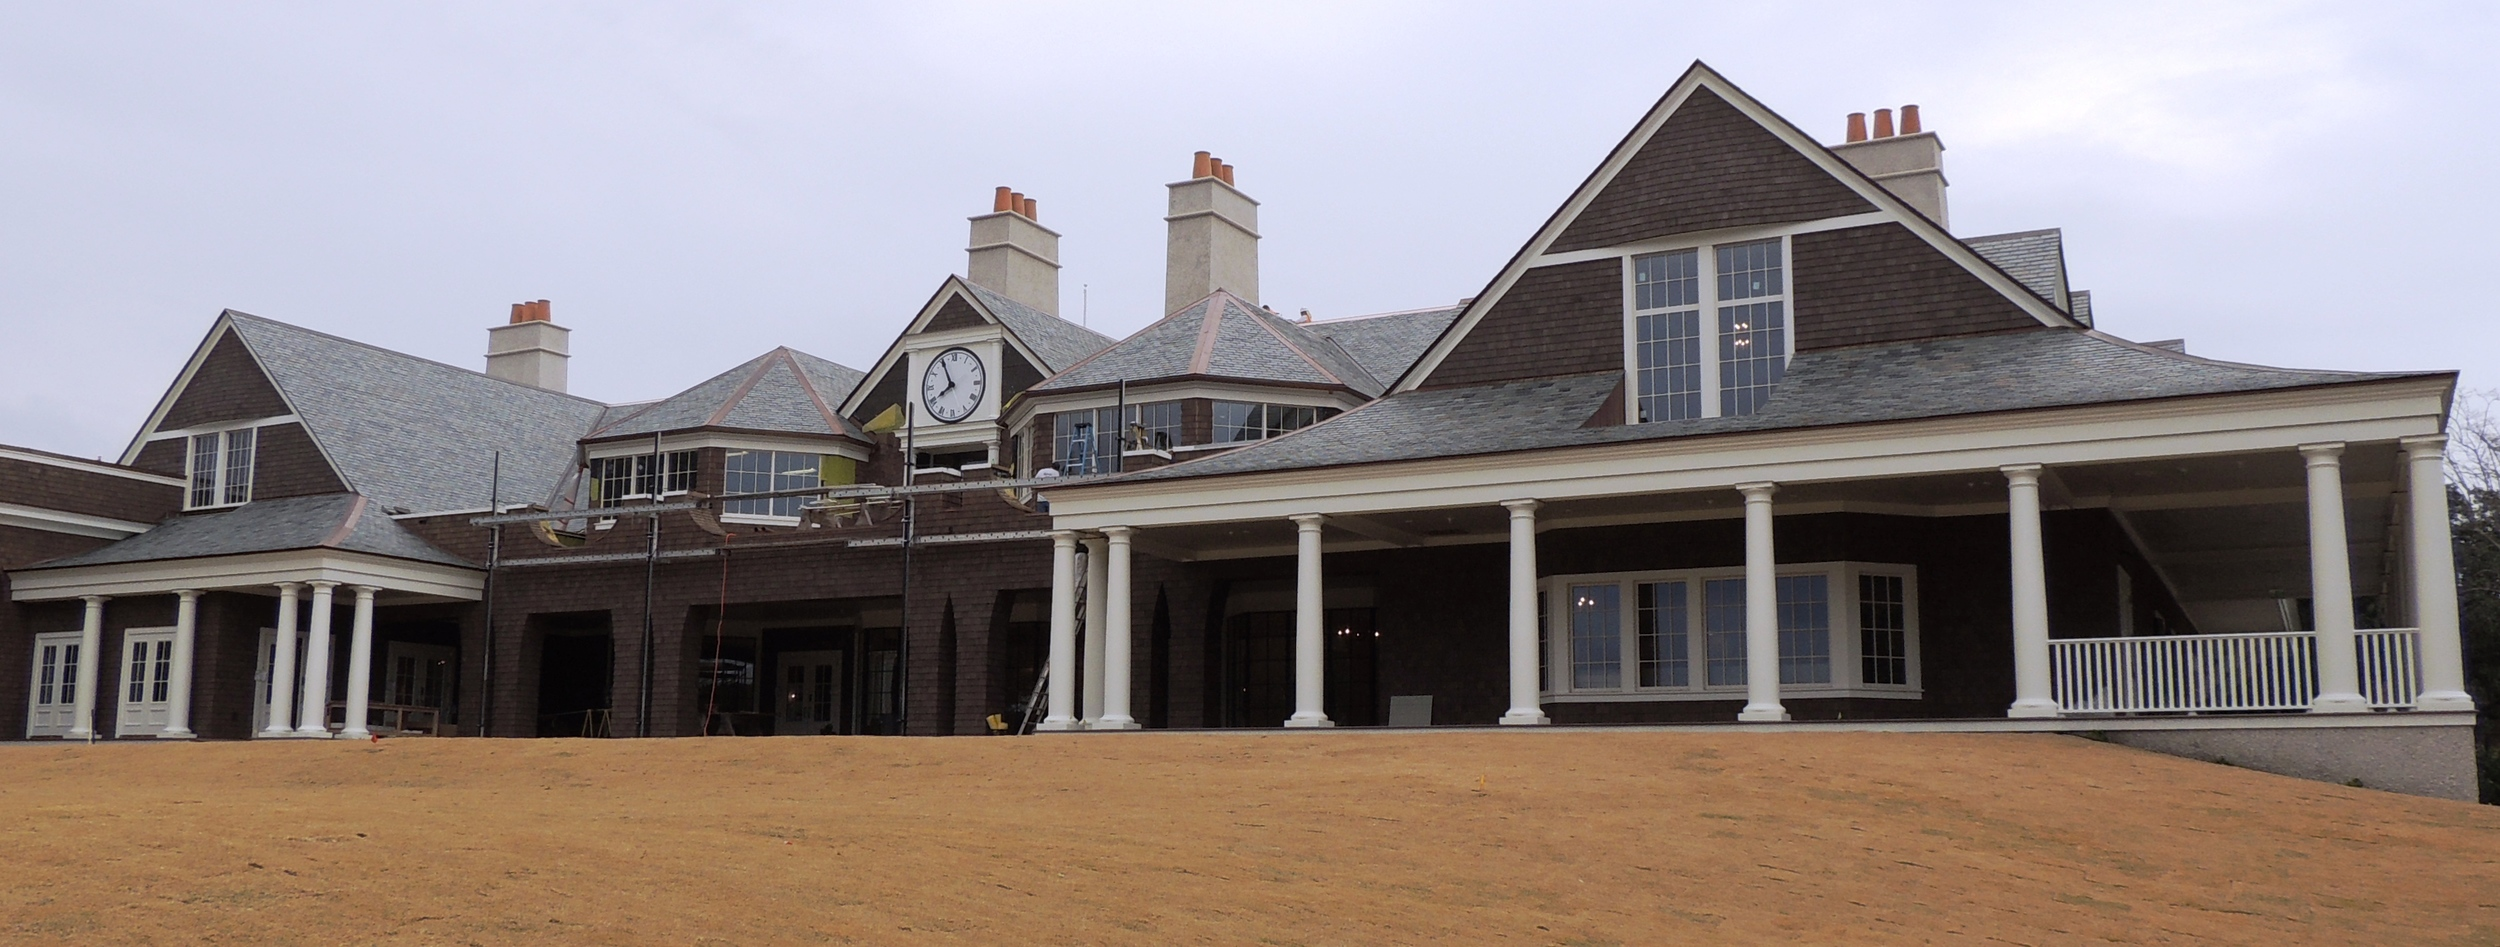 River Course Clubhouse, Kiawah Island, SC